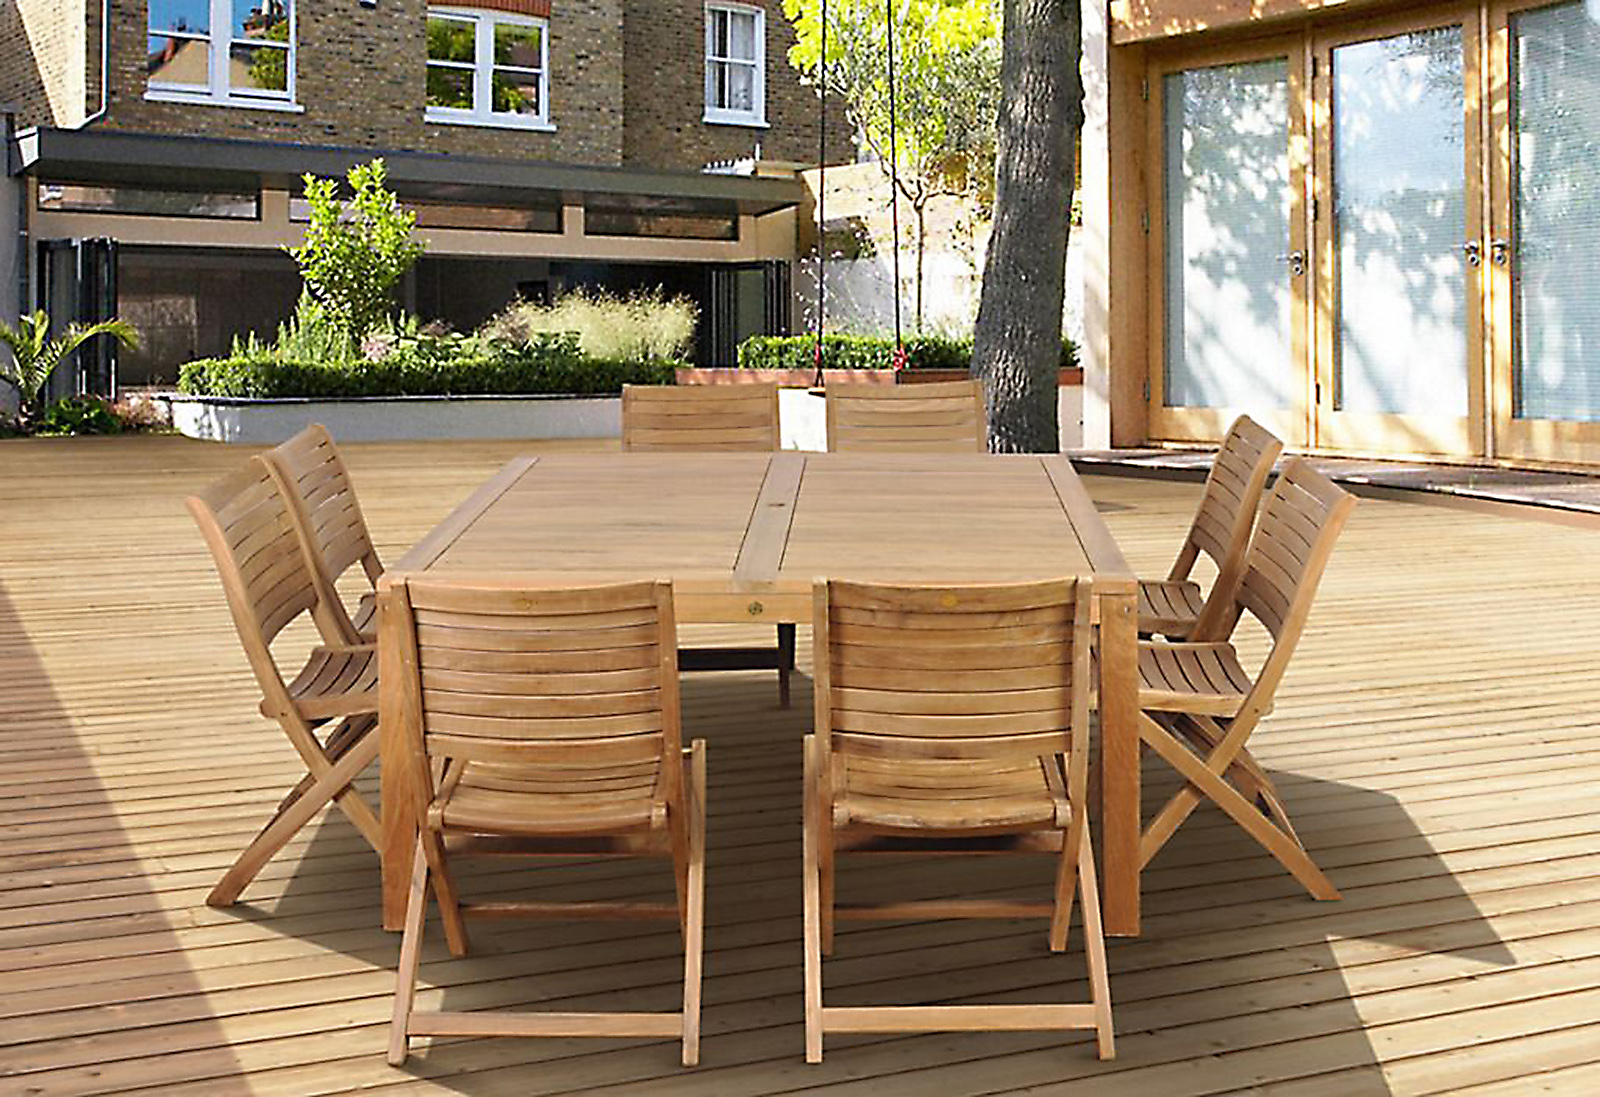 9 Piece Outdoor Dining Set Check Out Amazonia Cabana 9 Piece Square Teak Wood Patio Dining Set Shopyourway